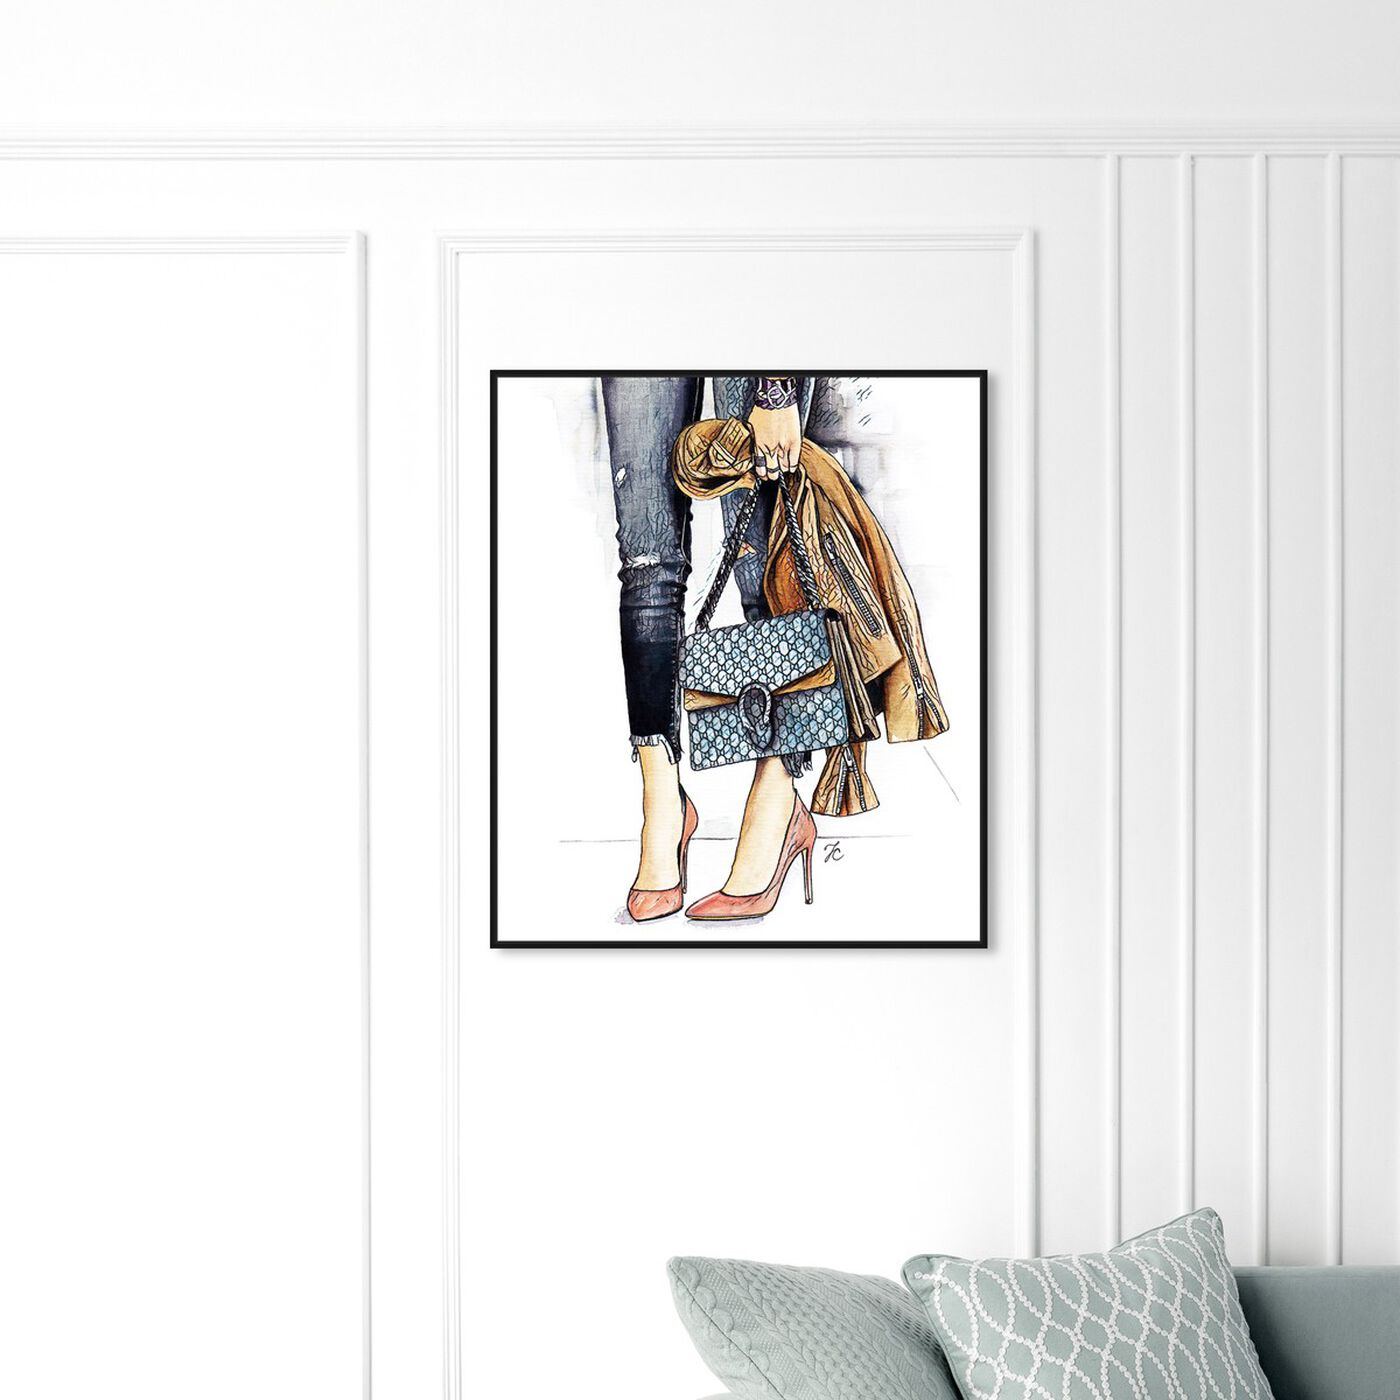 Hanging view of Doll Memories - Fashion Street Glam featuring fashion and glam and outfits art.